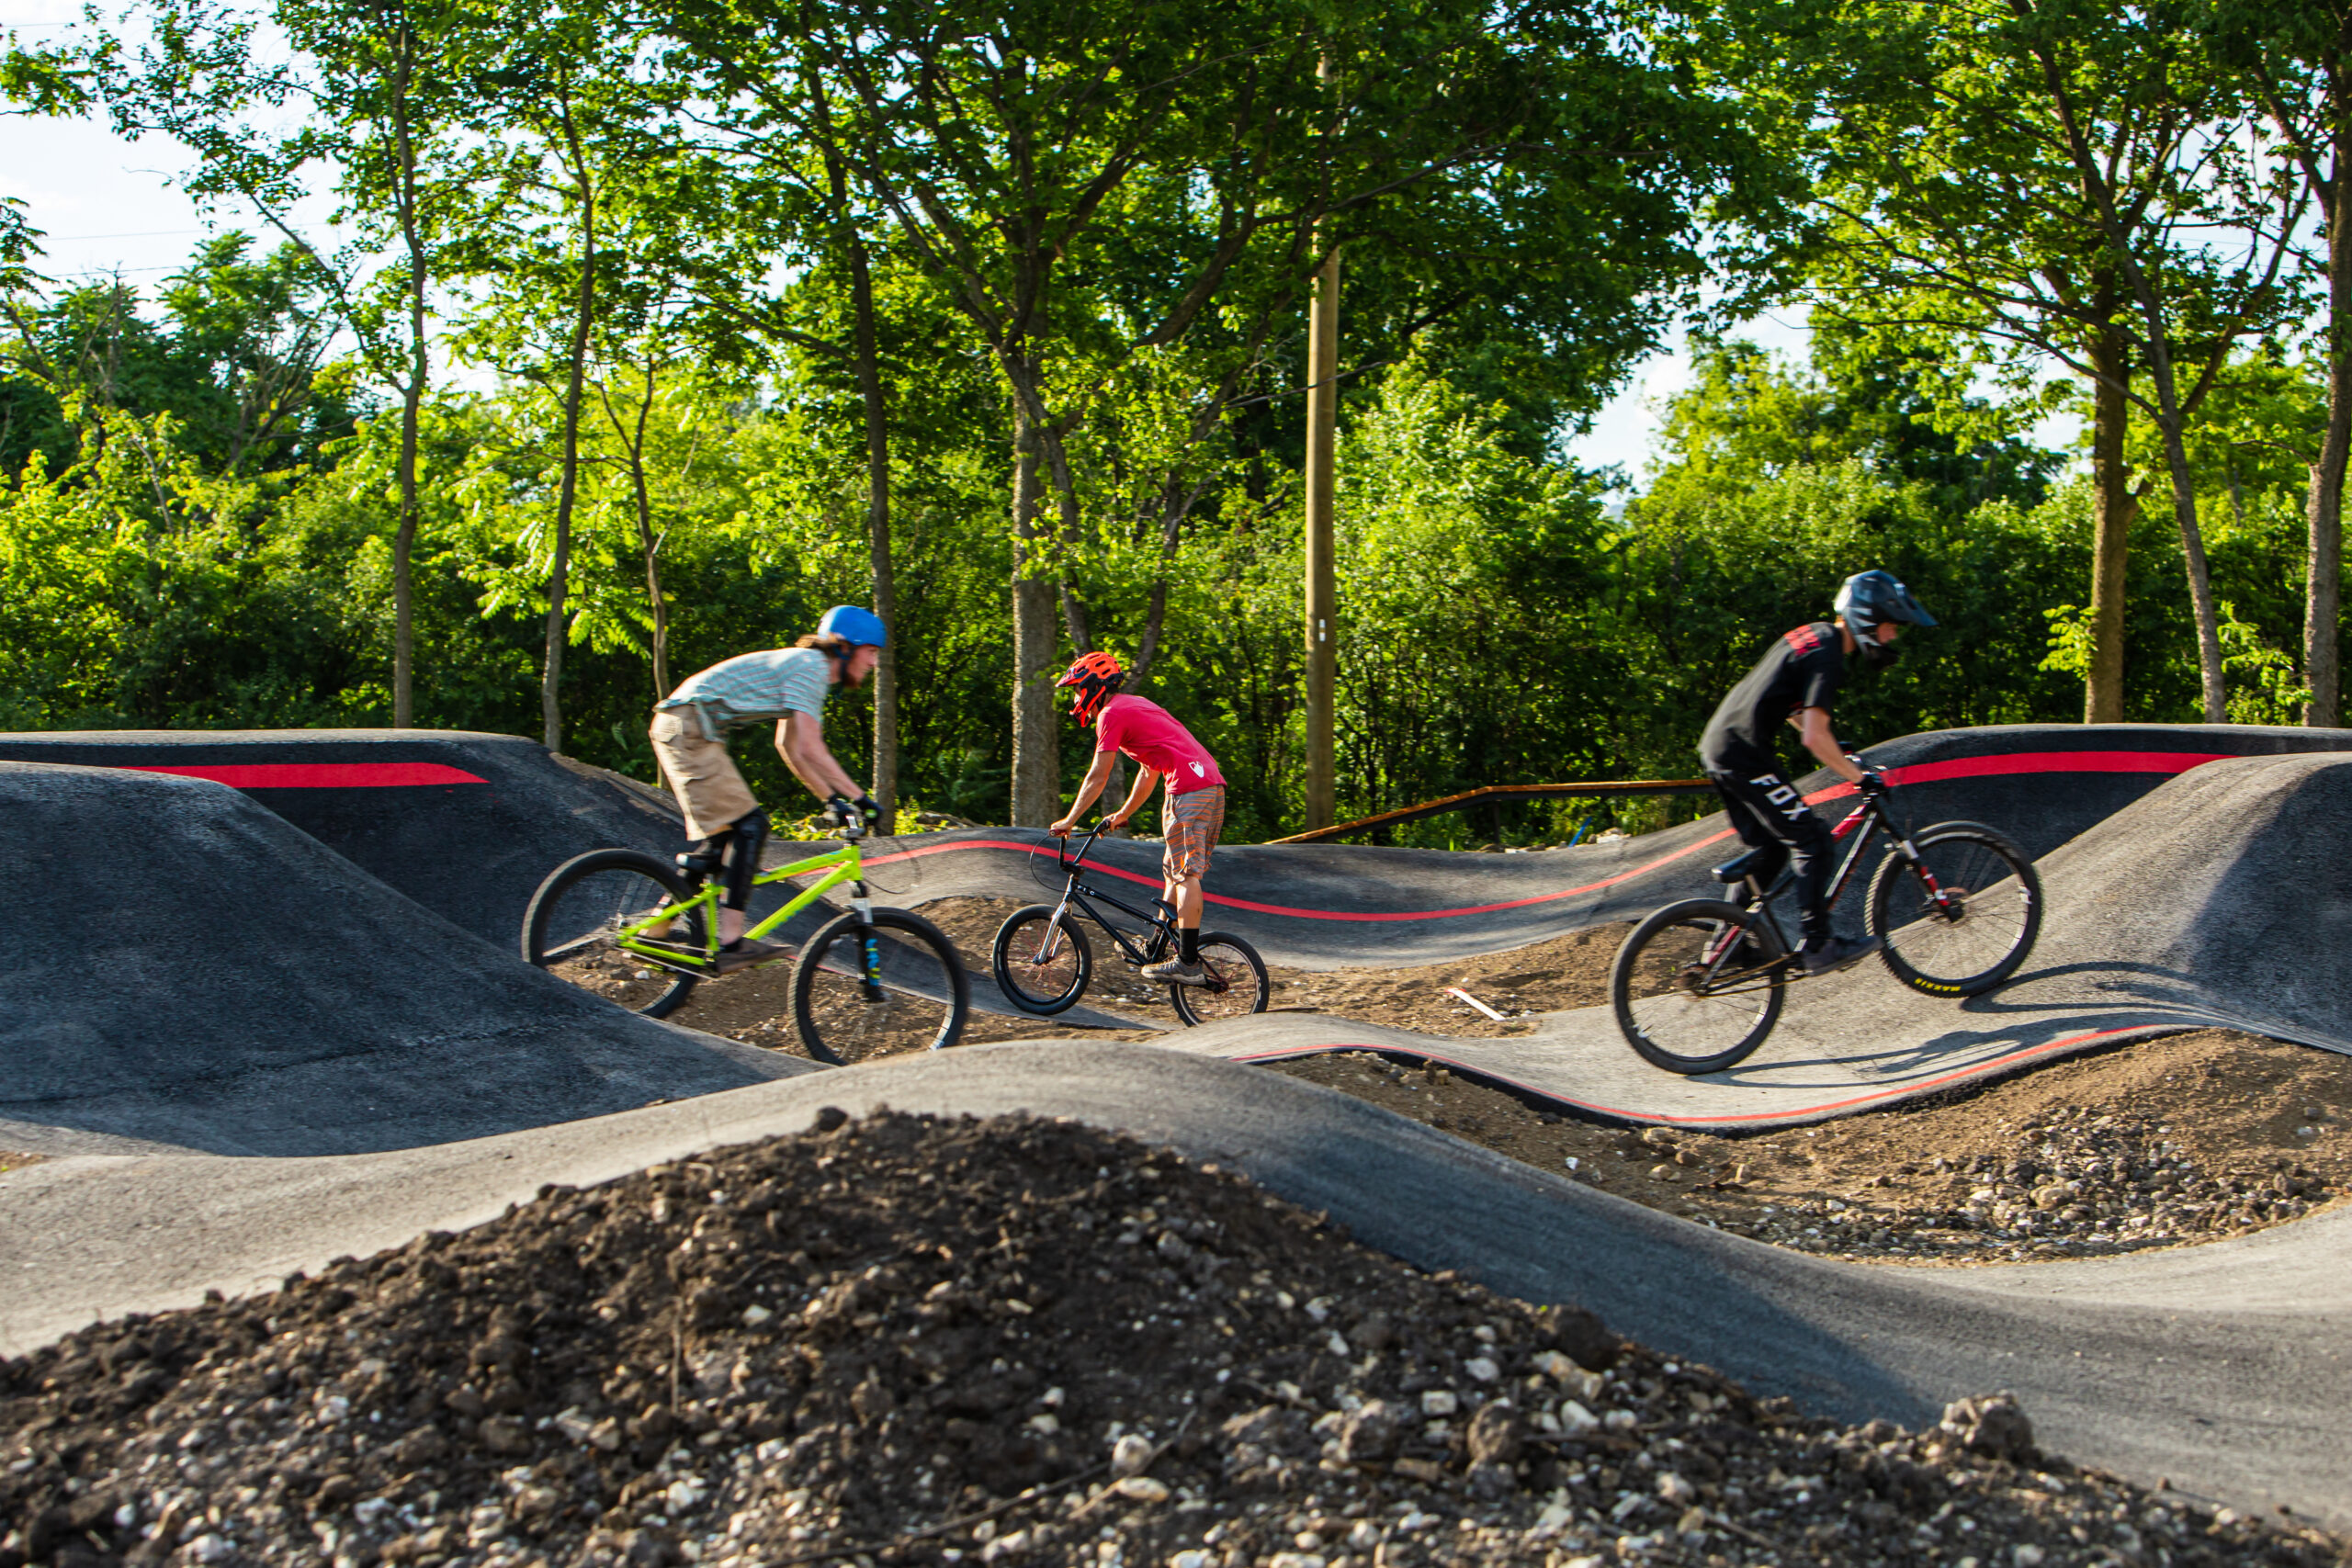 Teens riding bike ramps at The Forge: Lemont Quarries